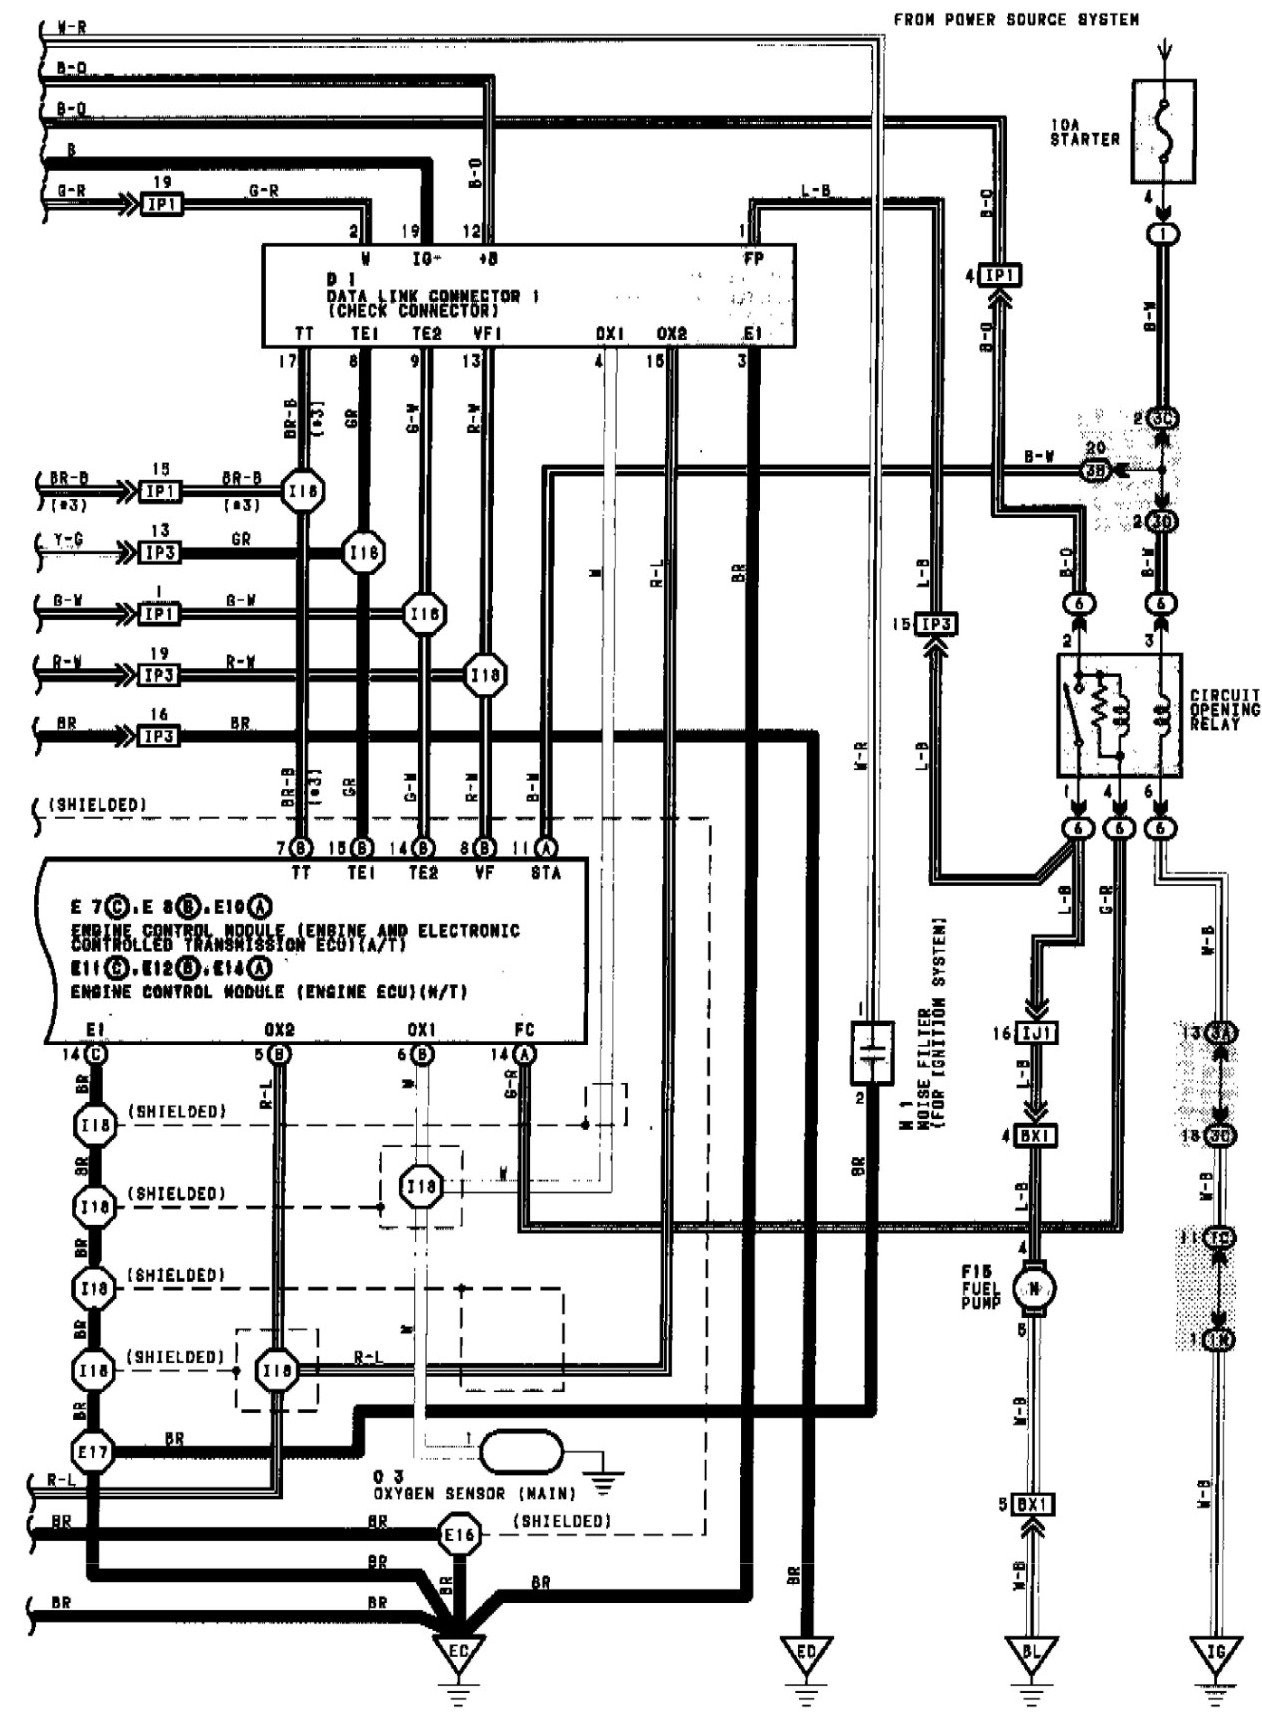 2011 toyota Camry Engine Diagram 1996 toyota Camry Wiring Diagram Wiring Diagram – Chocaraze Of 2011 toyota Camry Engine Diagram